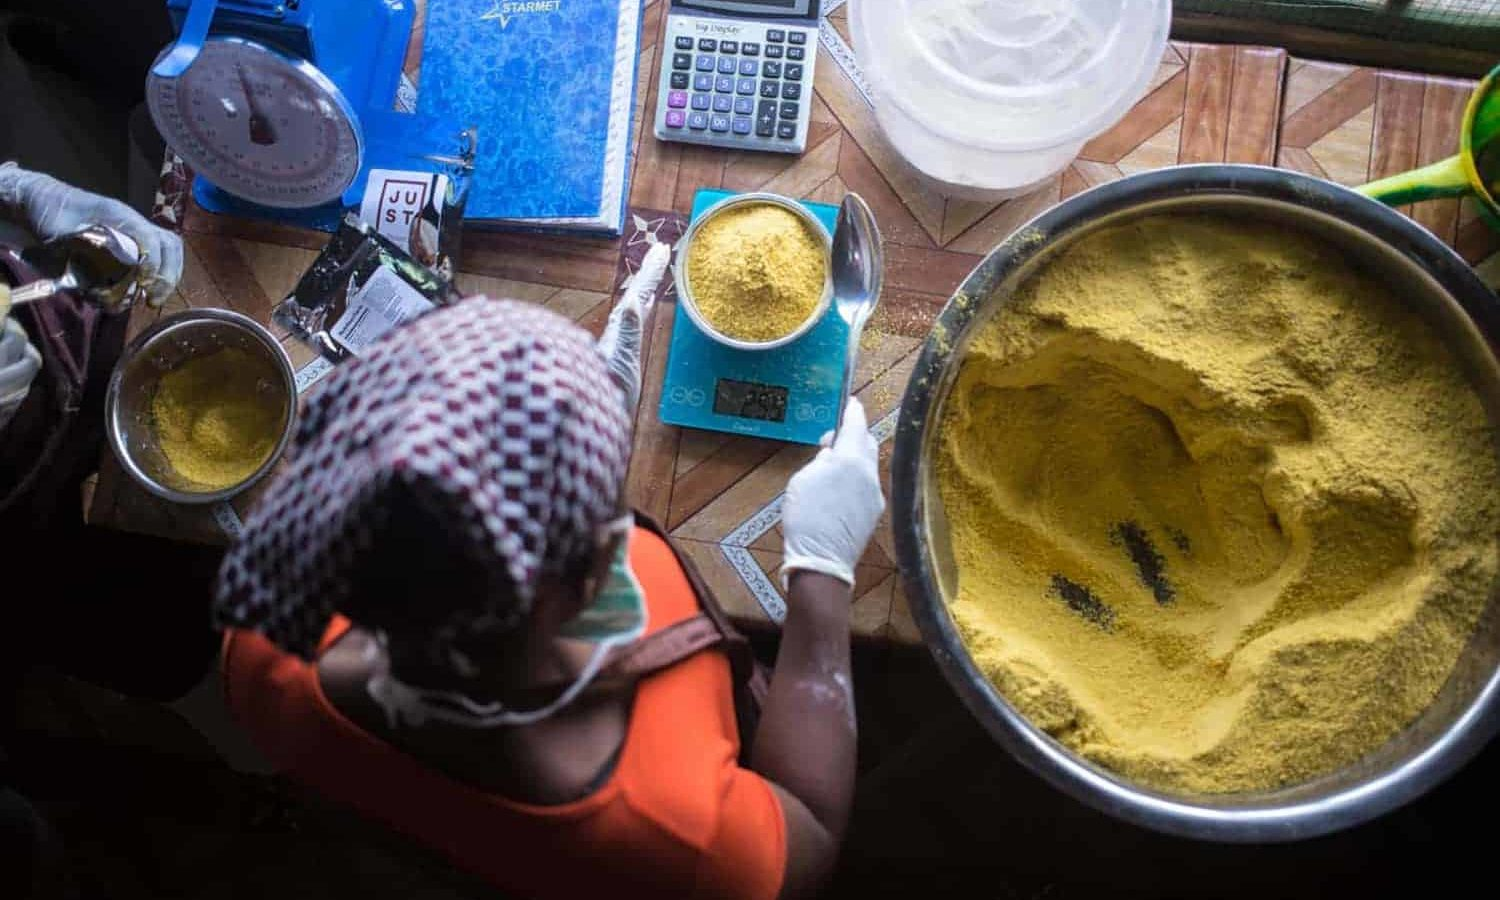 JUST, the Silicon Valley food tech startup, is changing food aid in Liberia, West Africa. Food Tank catches up with Just's Taylor Quinn to find out how.